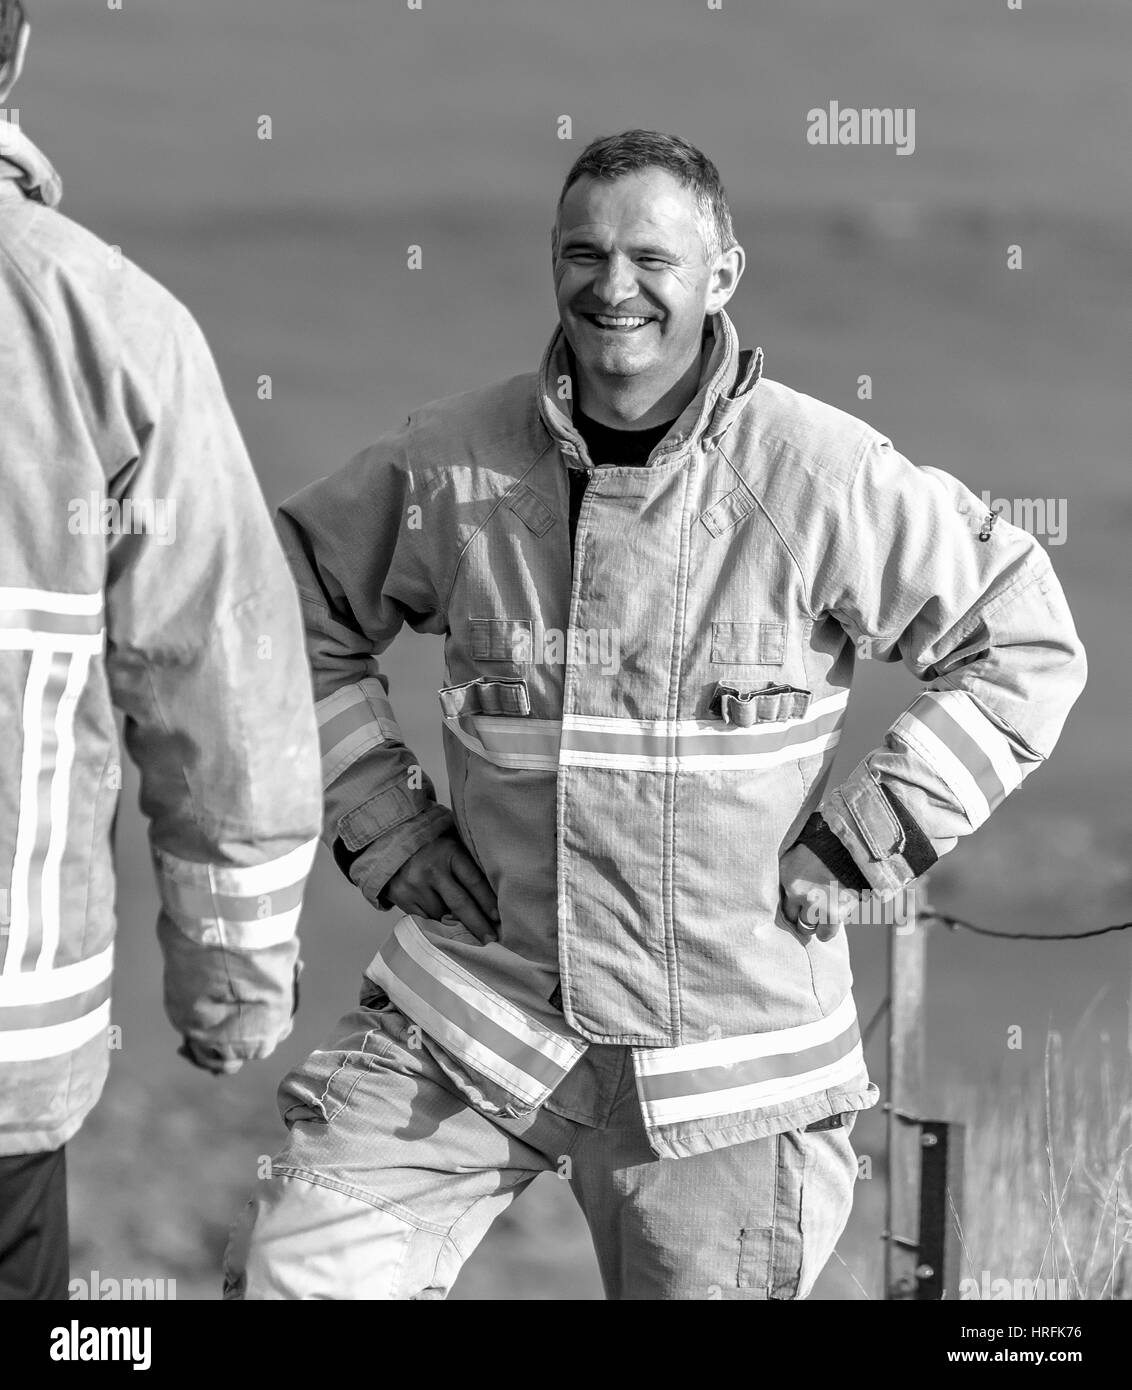 Fire officer smiling at conclusion of incident - Stock Image